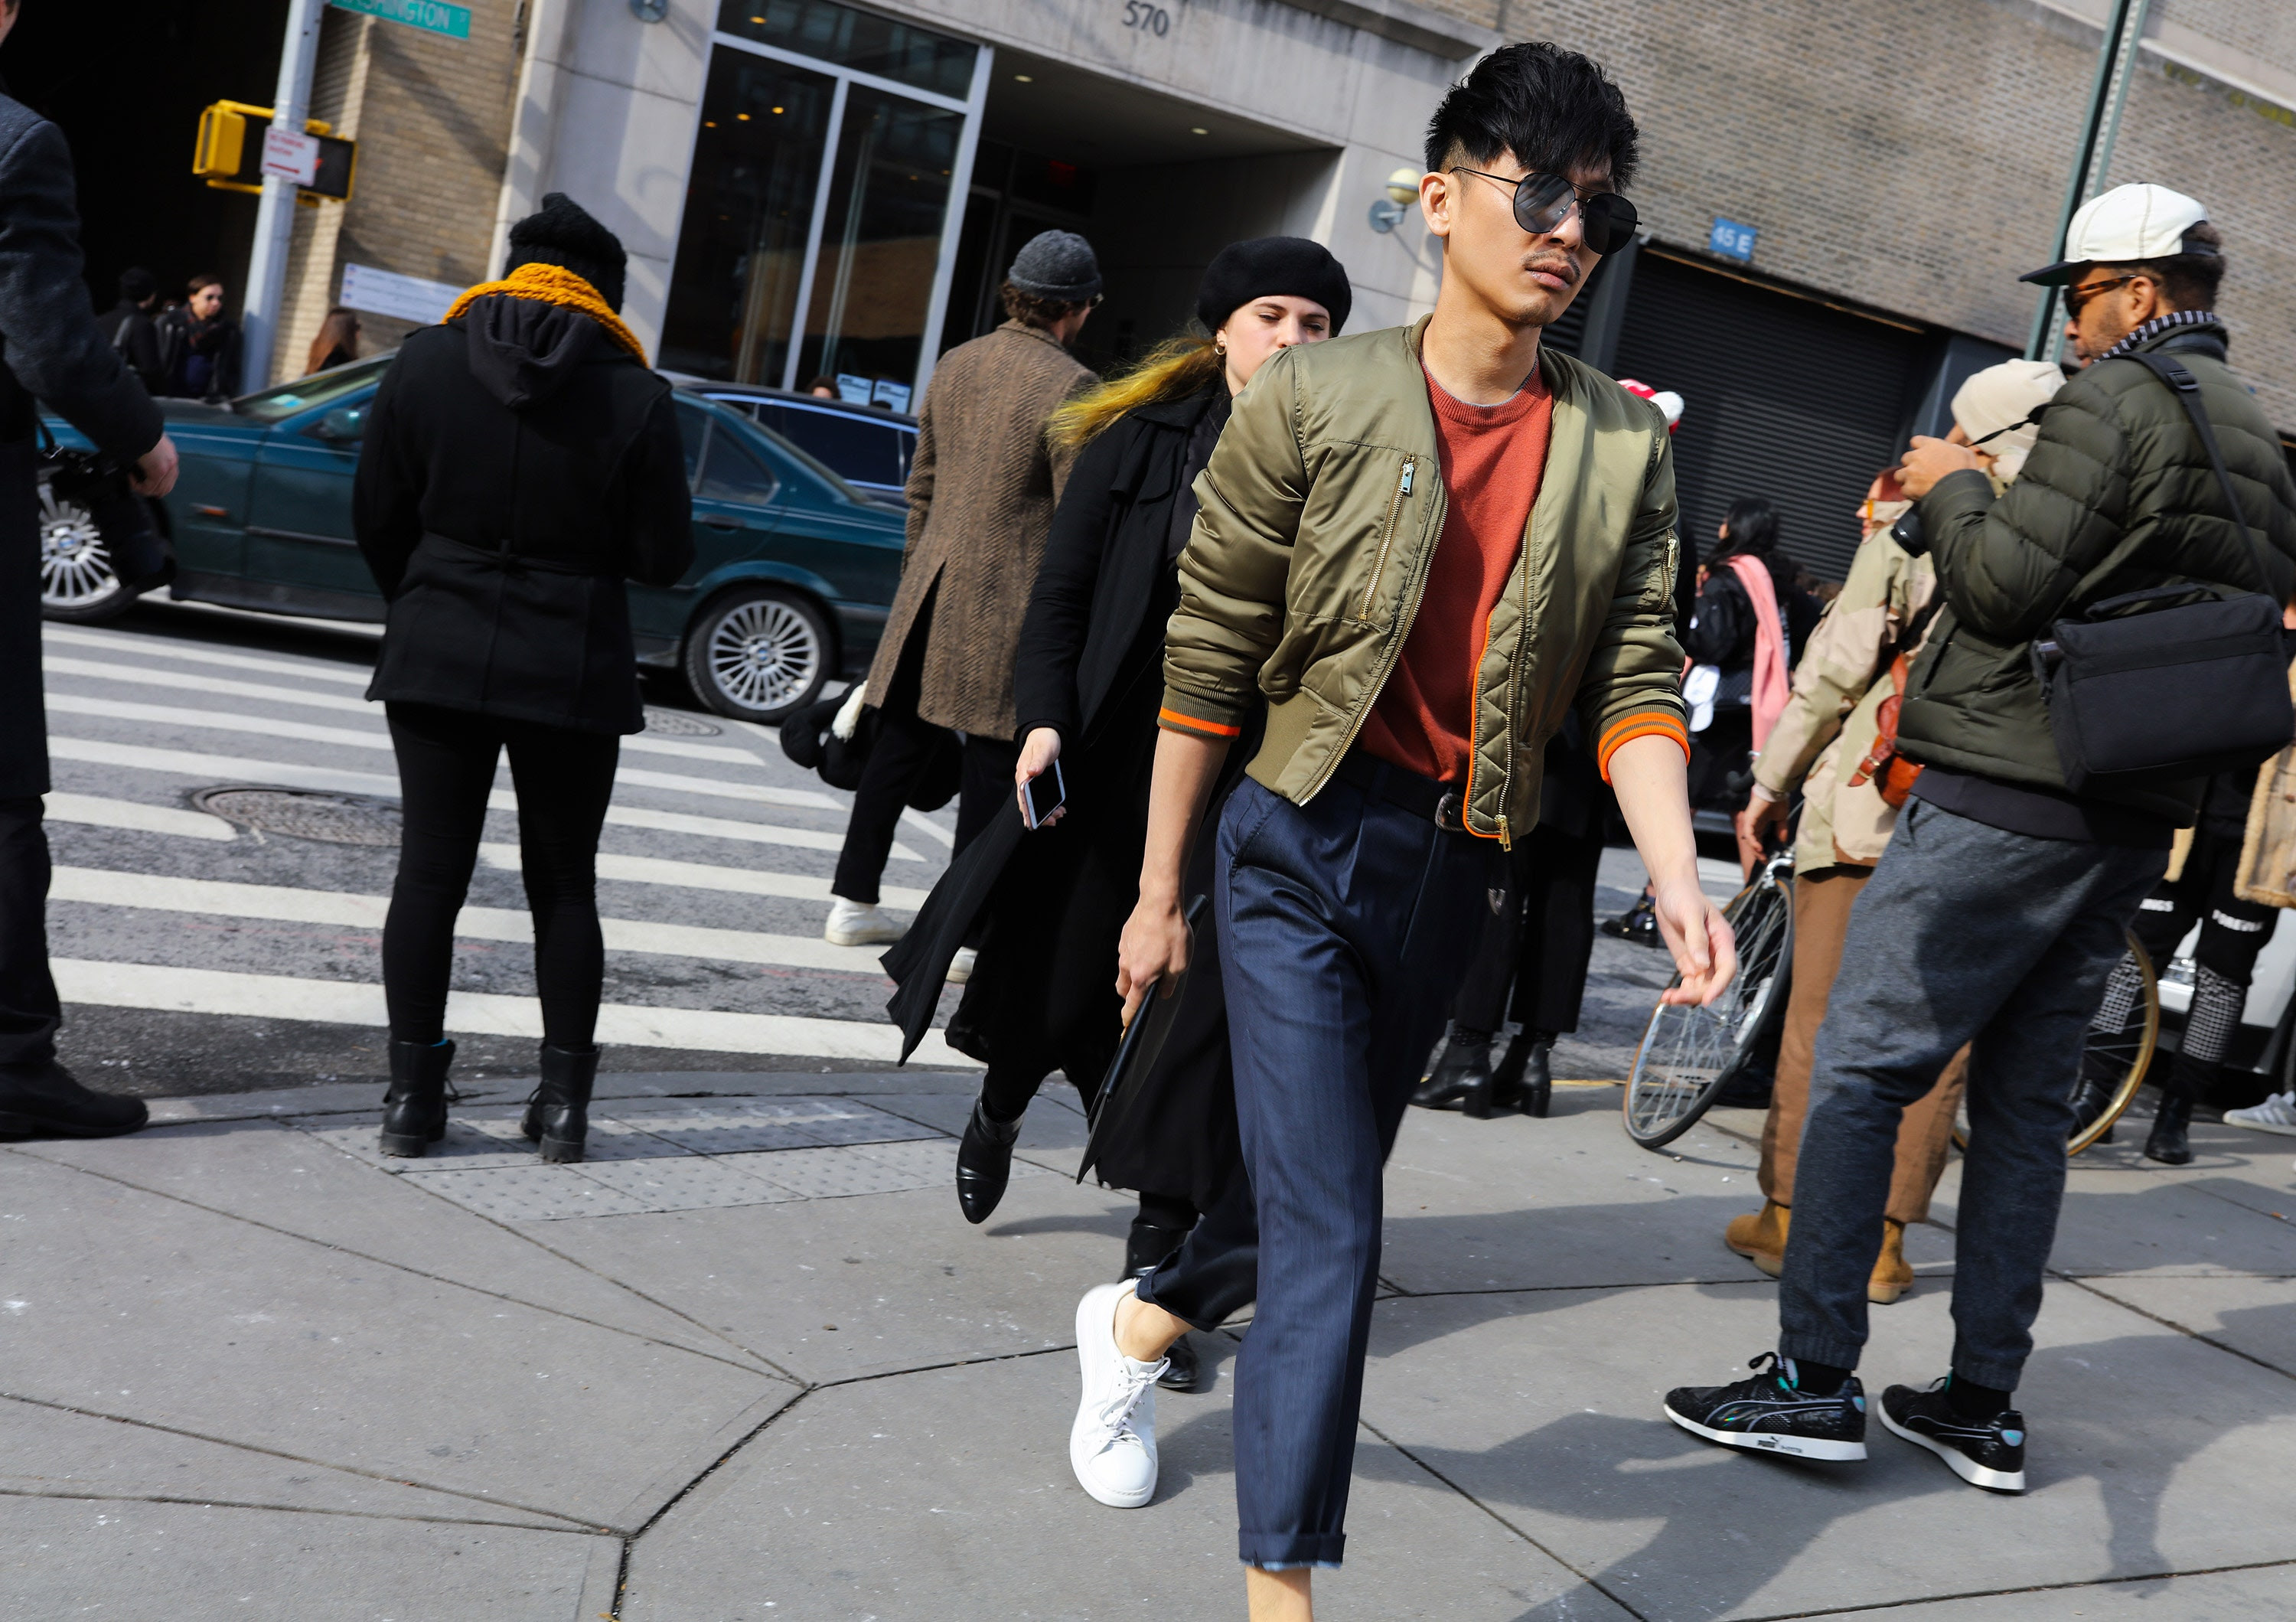 http://assets.vogue.com/photos/5893654adec09b18414565d6/master/pass/21-phil-oh-mens-nyfw-day-2-2017.jpg